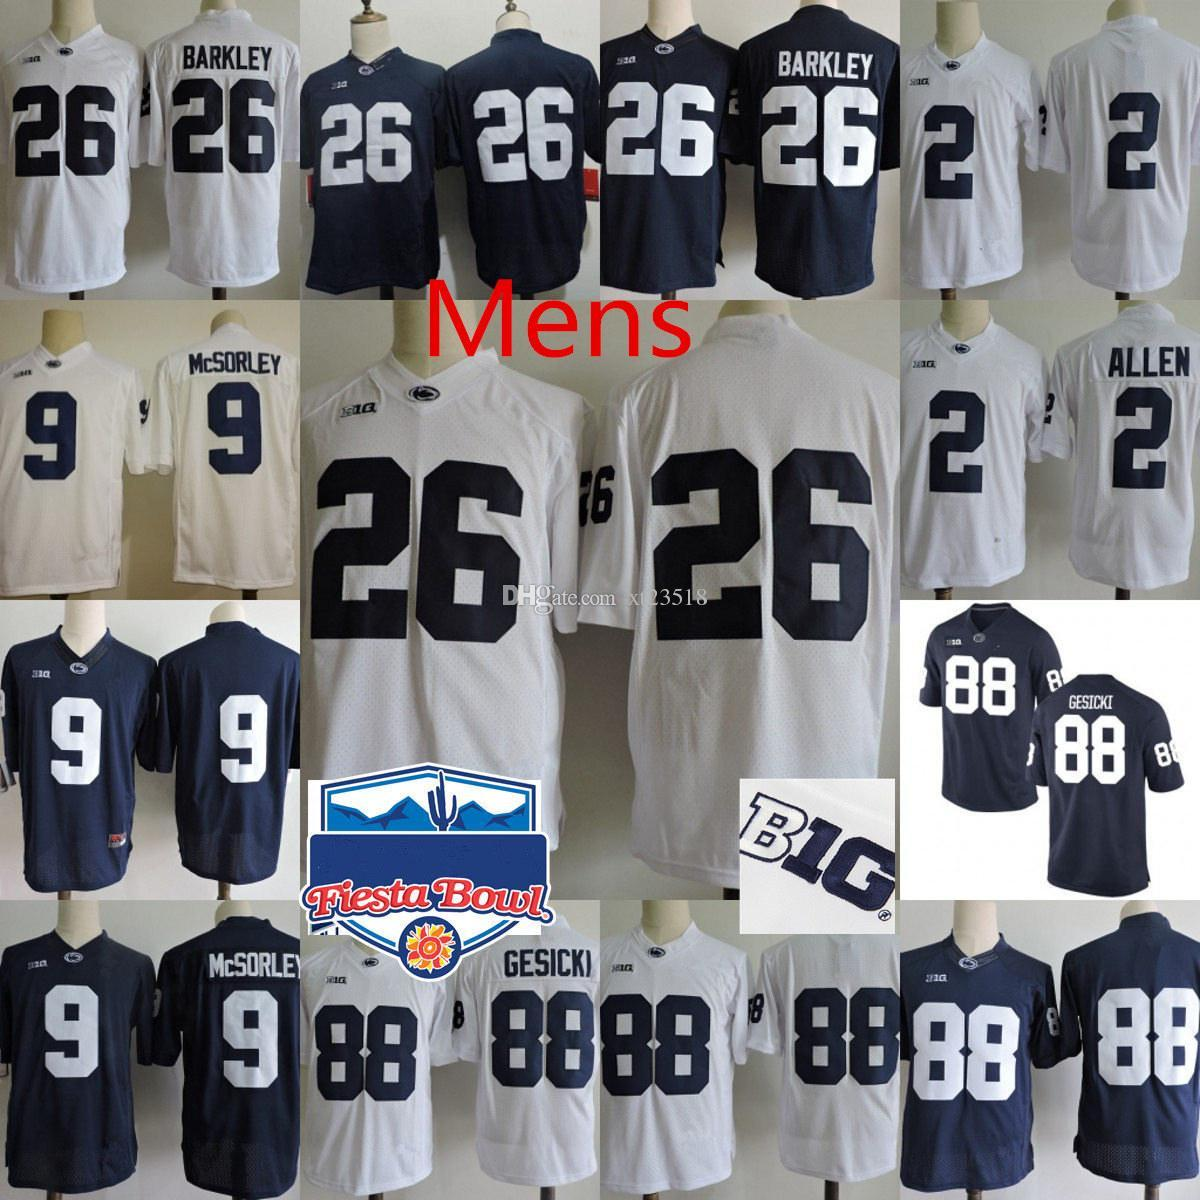 a17cc3900 Mens Penn State Nittany Lions Marcus Allen College Football Jerseys ...